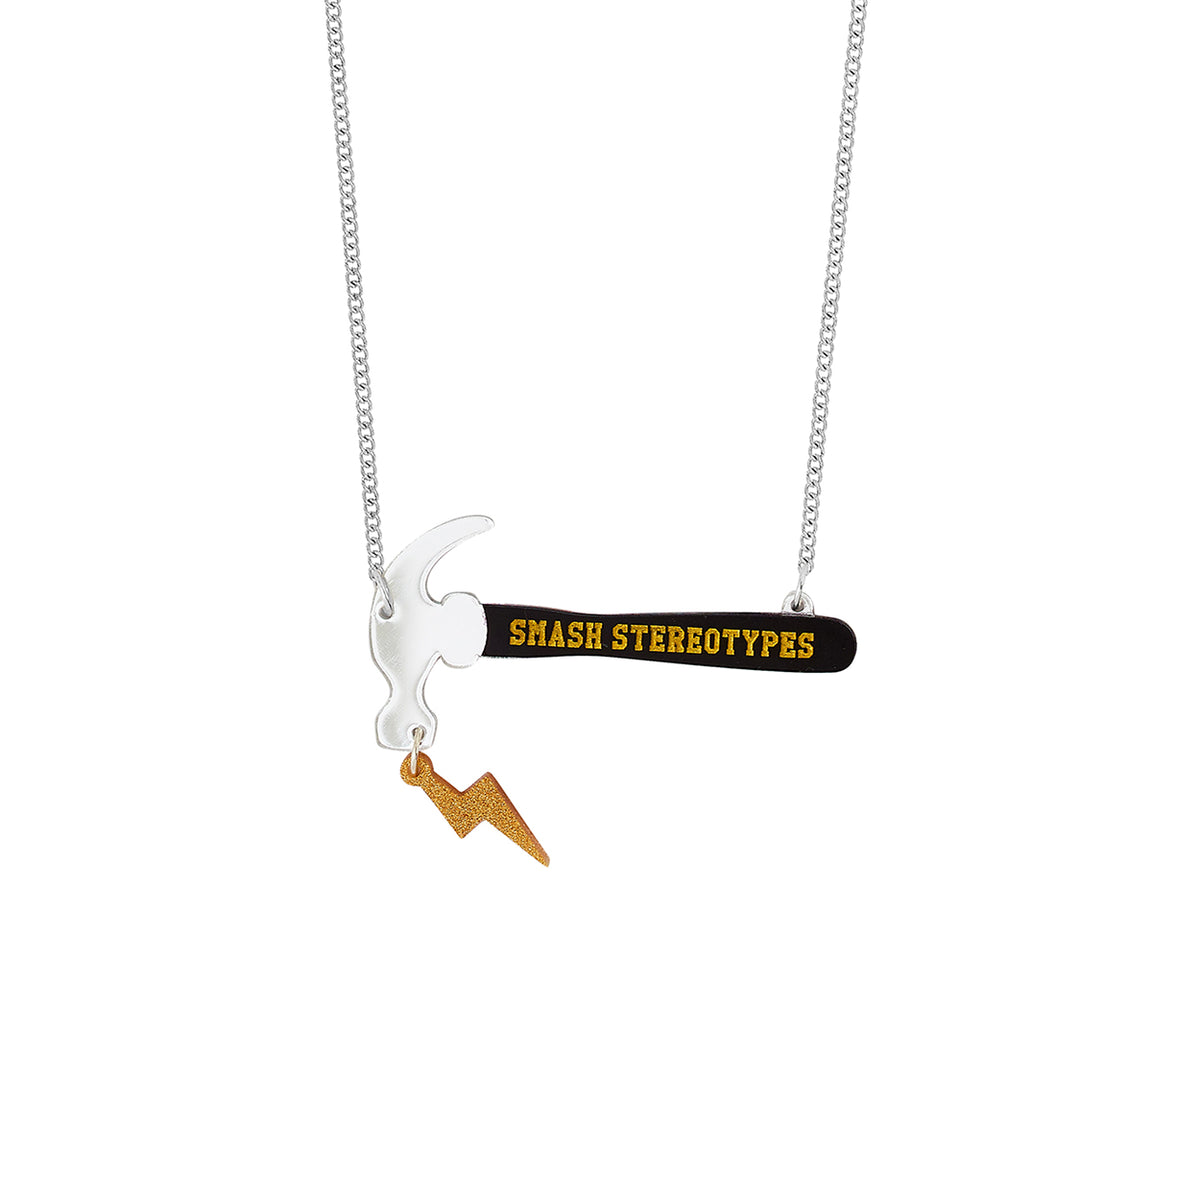 Image of Smashing Stereotypes Necklace hammer pendant